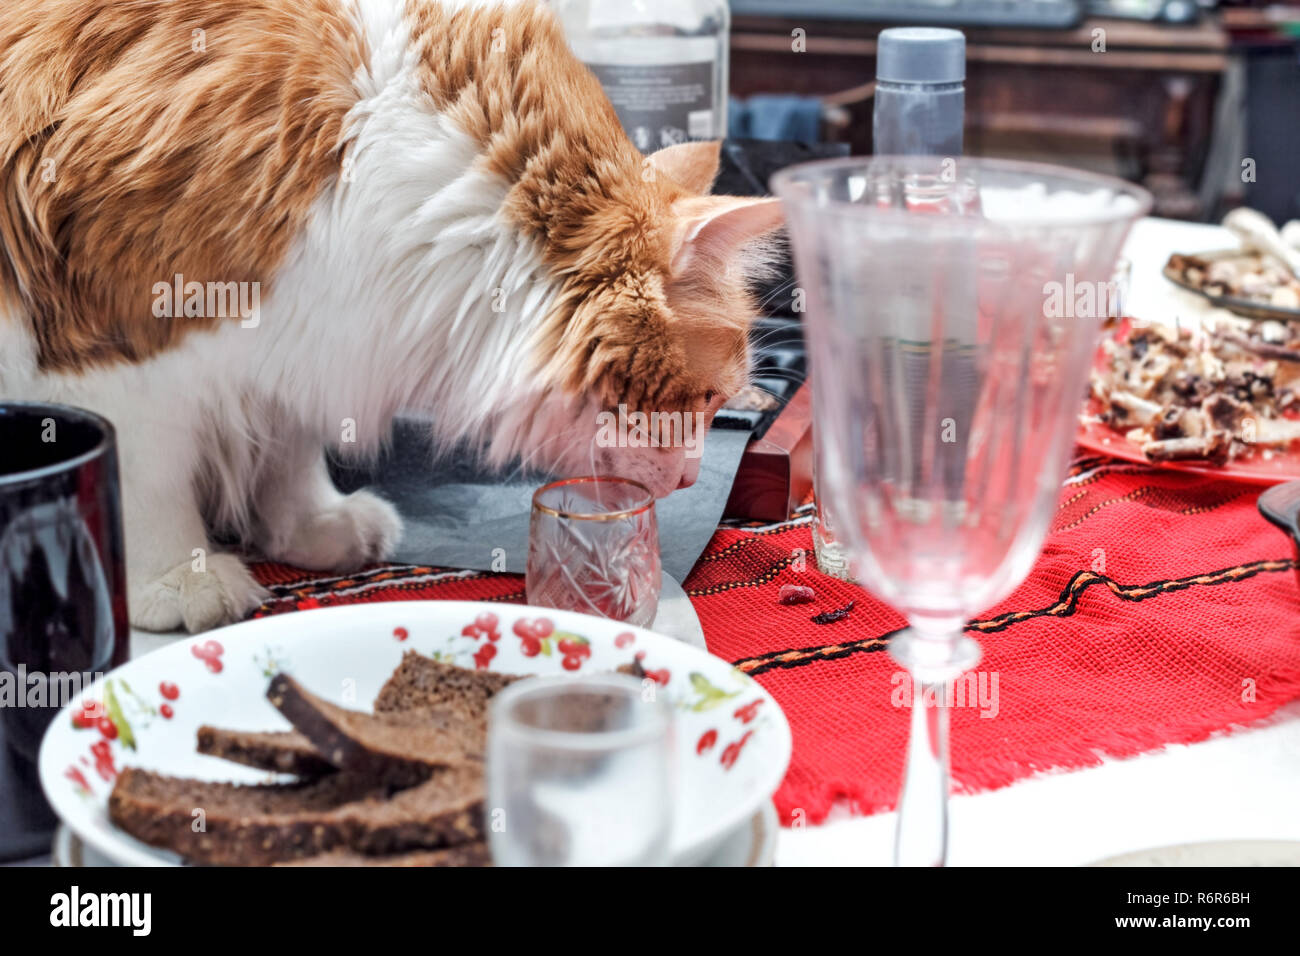 Adult red pretty cat on table with mess after celebration in room - Stock Image